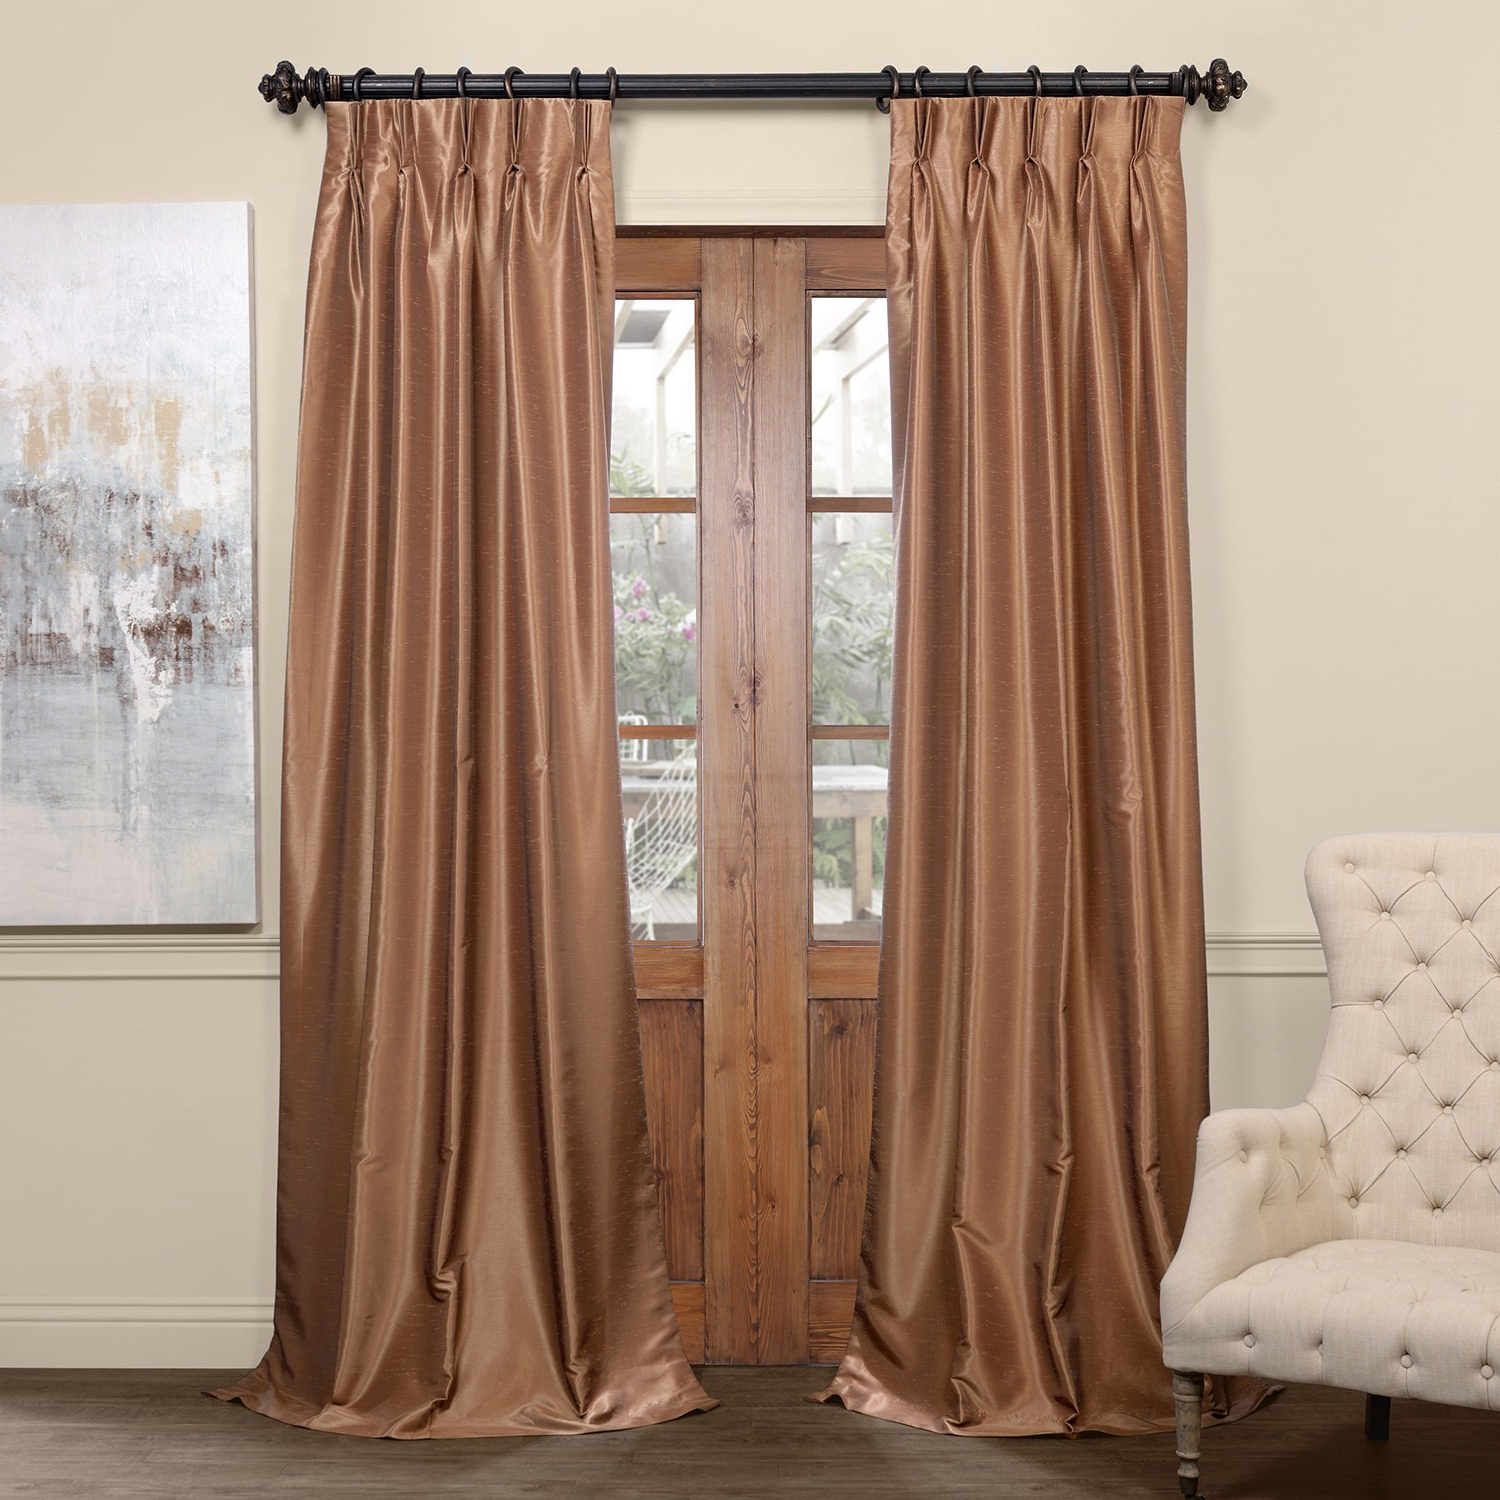 "Pdch Kbs8bo 108 Fp Pleated Blackout Vintage Textured Faux Dupioni Silk Curtain, 25 X 108"", Flax Gold In Well Known Flax Gold Vintage Faux Textured Silk Single Curtain Panels (View 14 of 23)"